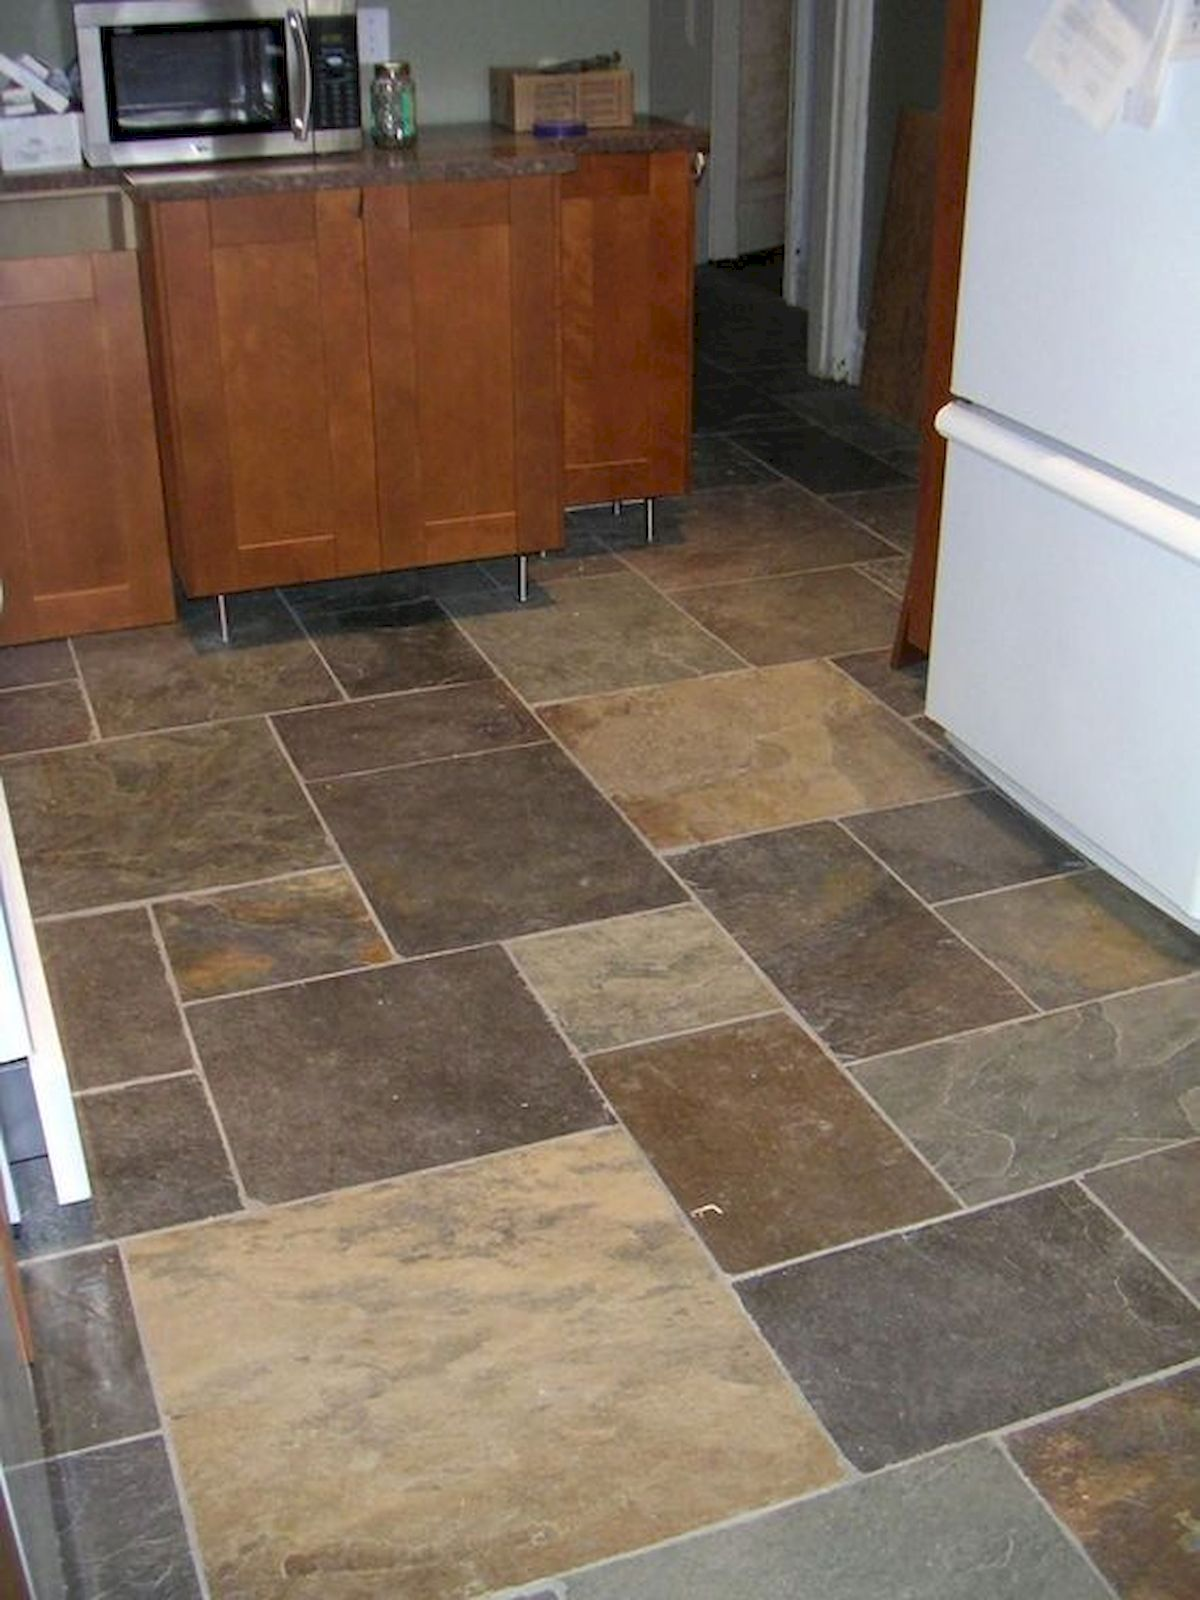 30 Best Kitchen Floor Tile Design Ideas With Concrete Floor Ideas (17)